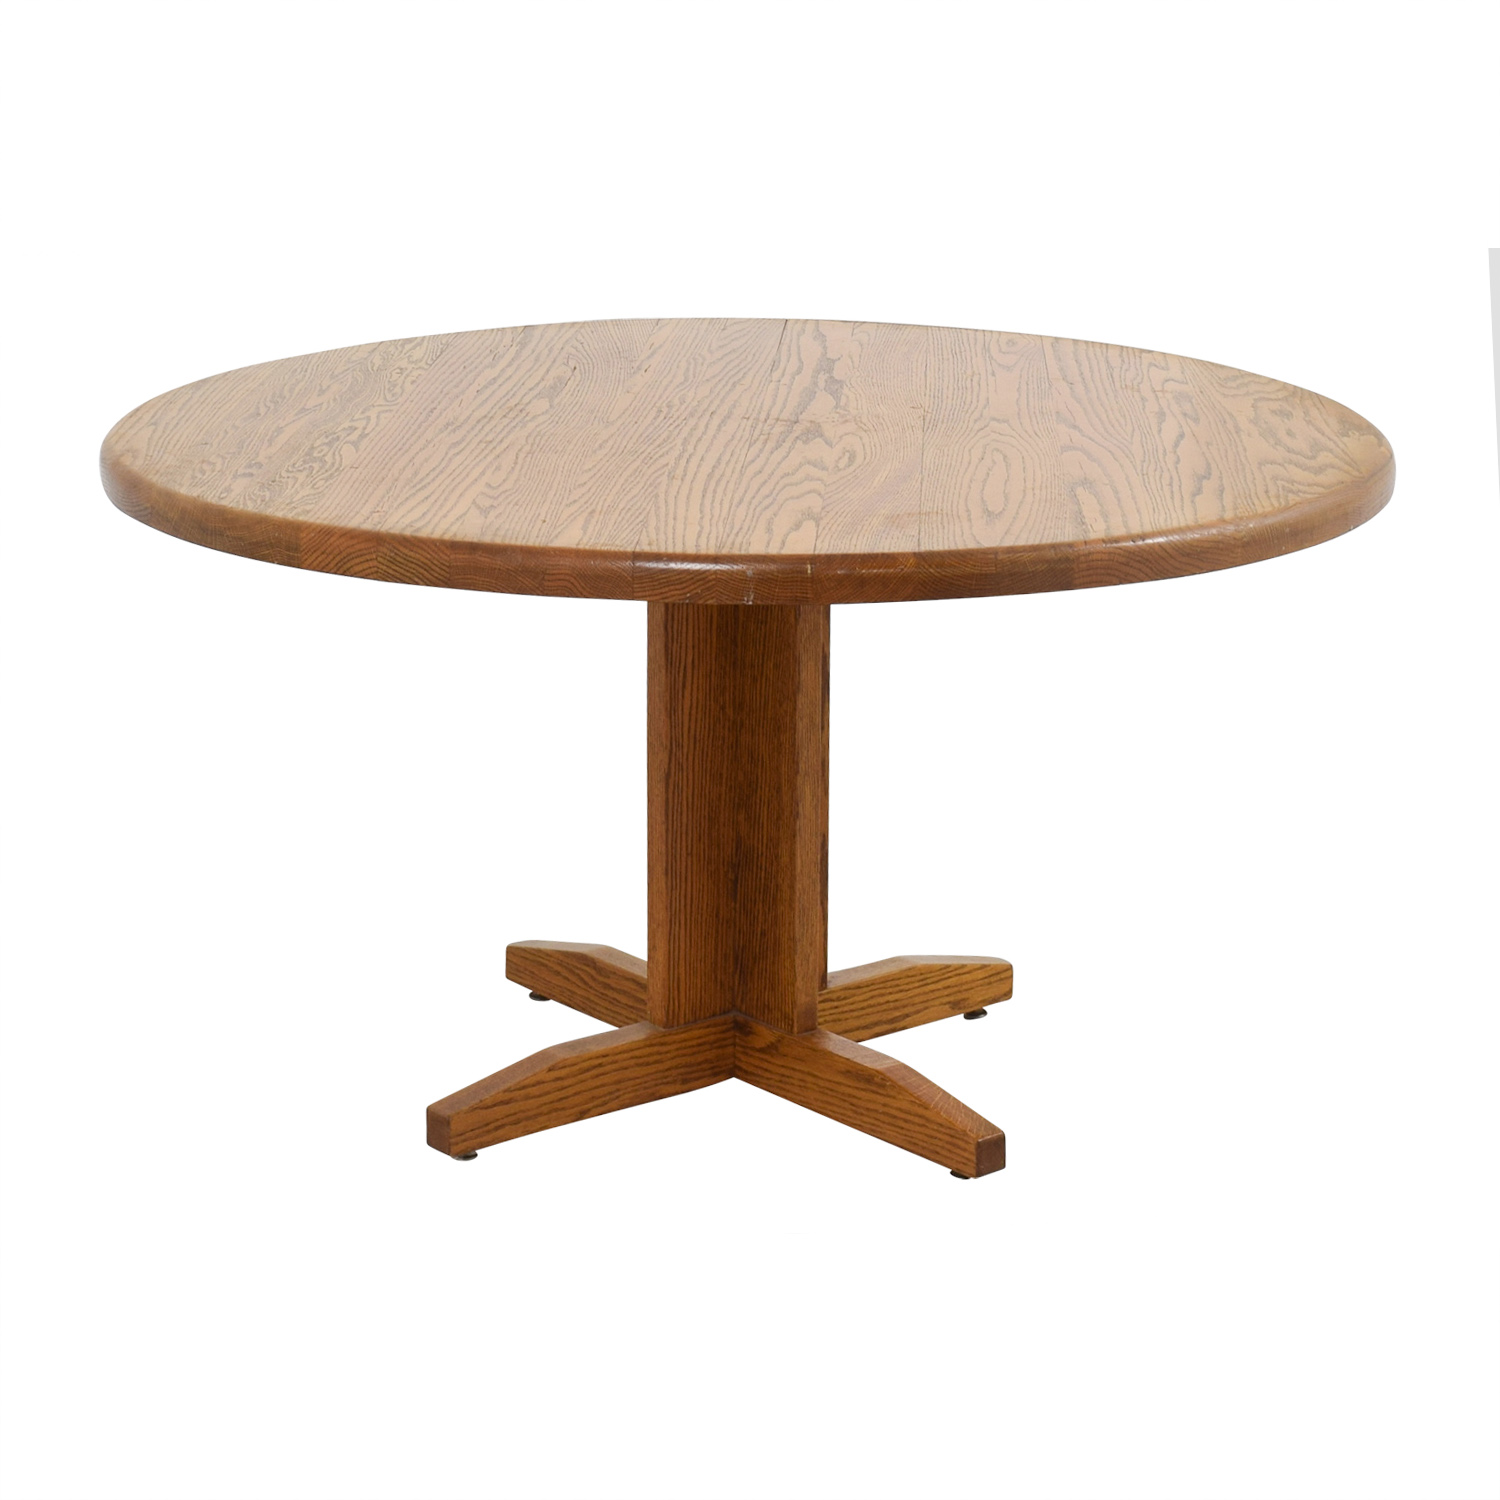 62 off oak round dining table tables - Round oak dining tables ...